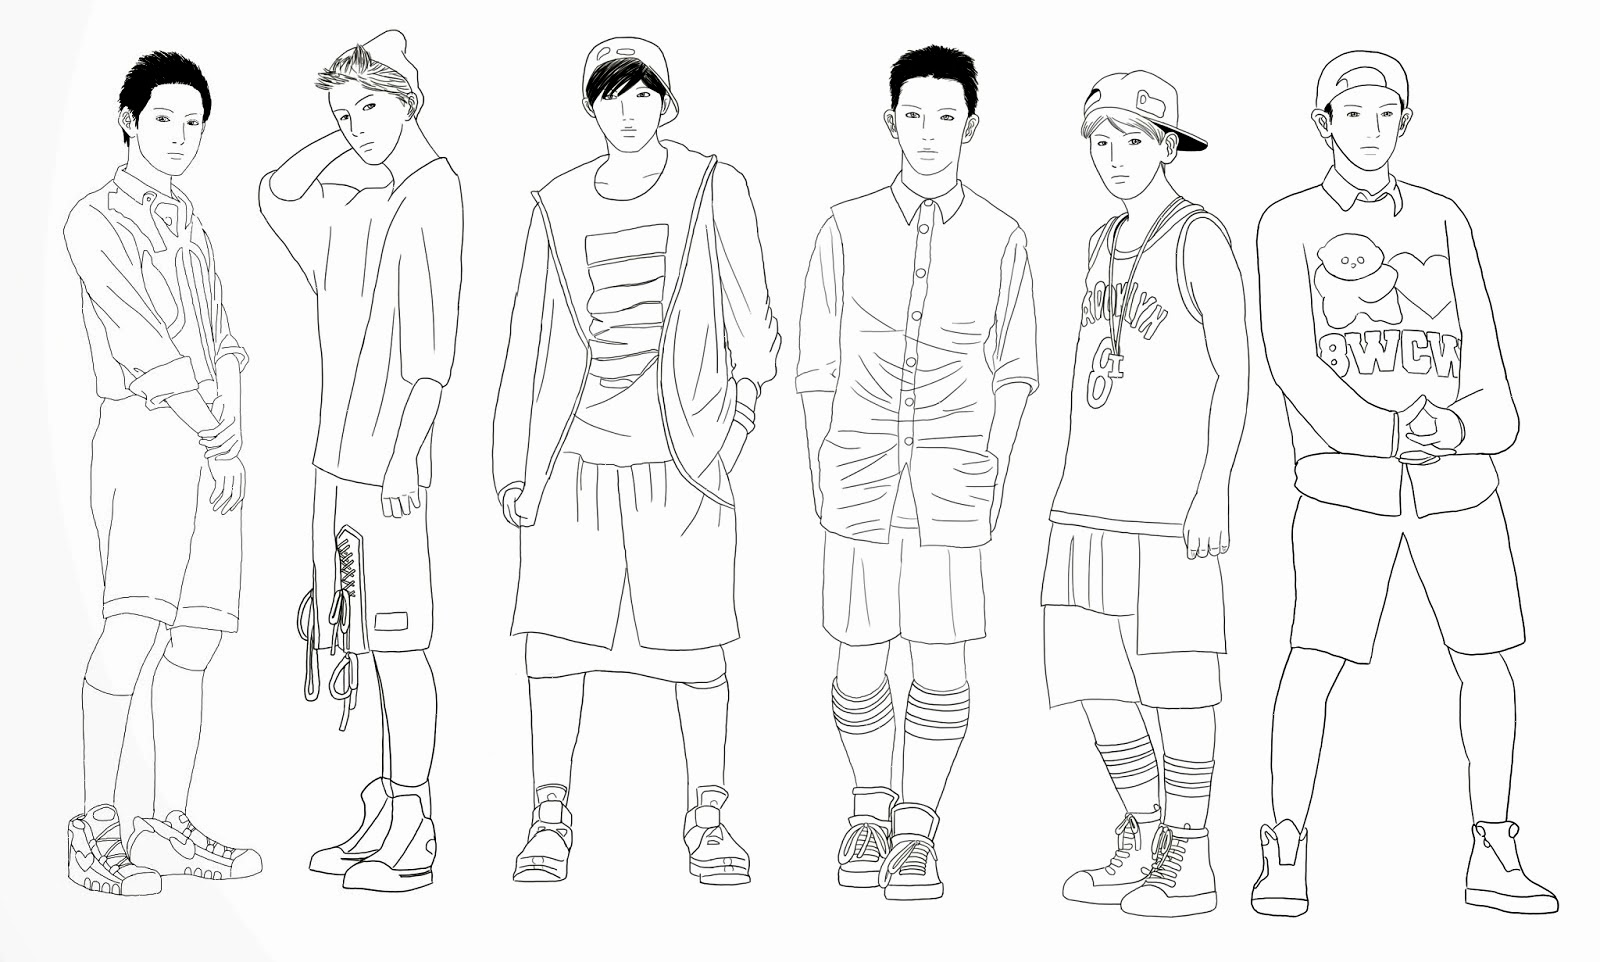 exo coloring pages   ILICarrieDoll: Exo-K Growl Linearts